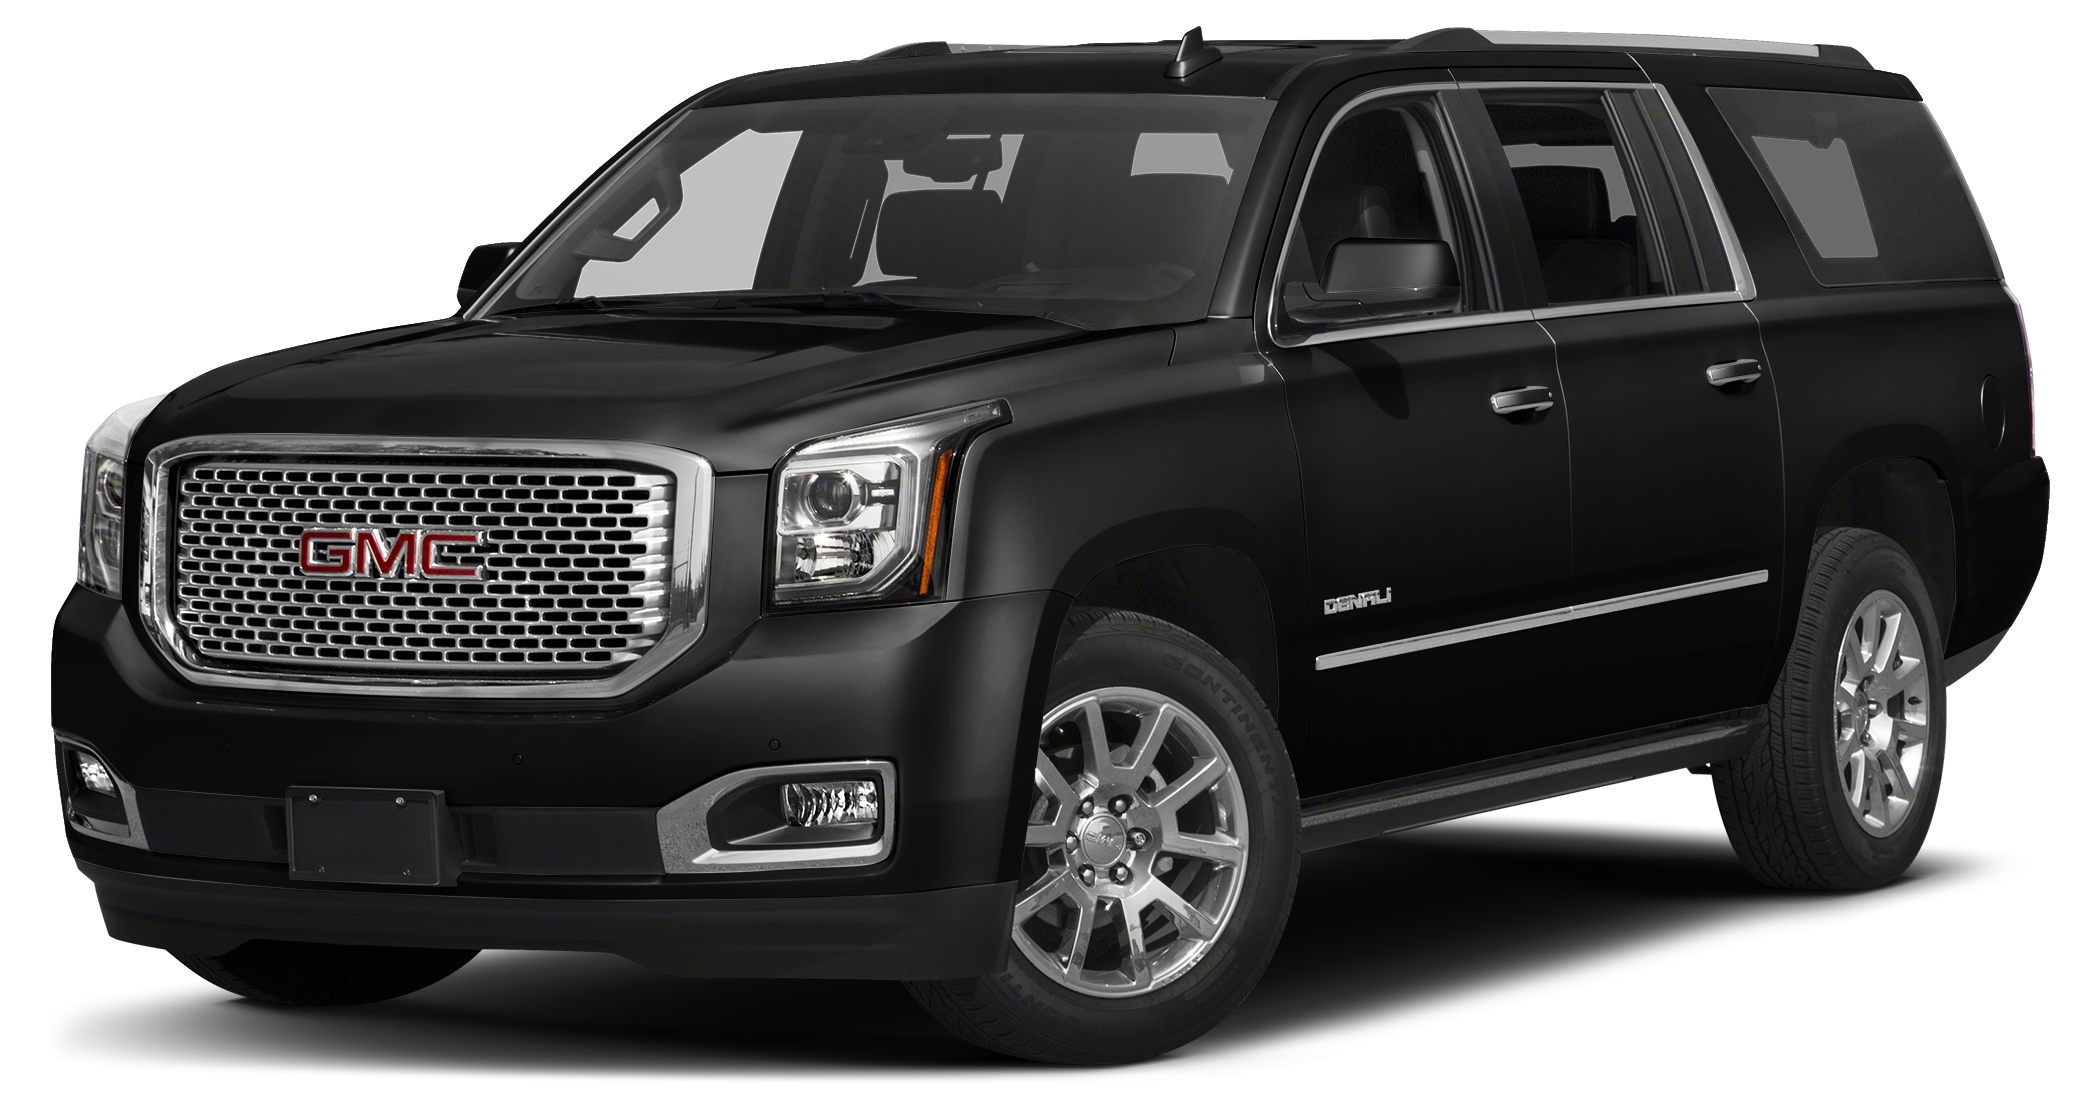 2018 GMC Yukon XL Denali Make sure to get your hands on this 2018 GMC Yukon XL Denali with a backu